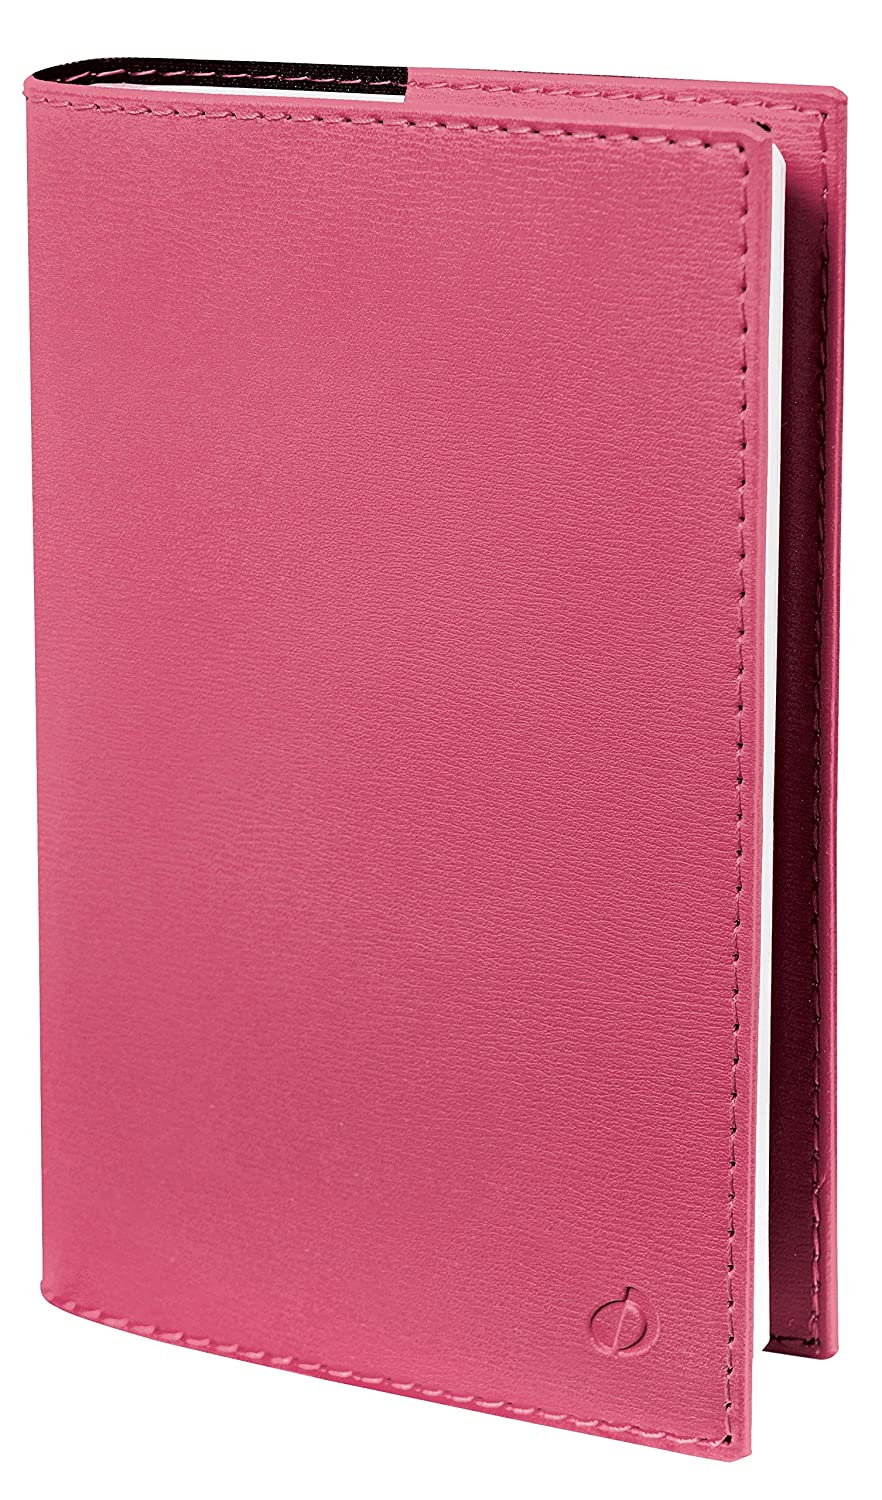 Quo Vadis Soho AFFAIRES Agenda civil Semainier 10x15cm Rose Année 2019 0041076Q